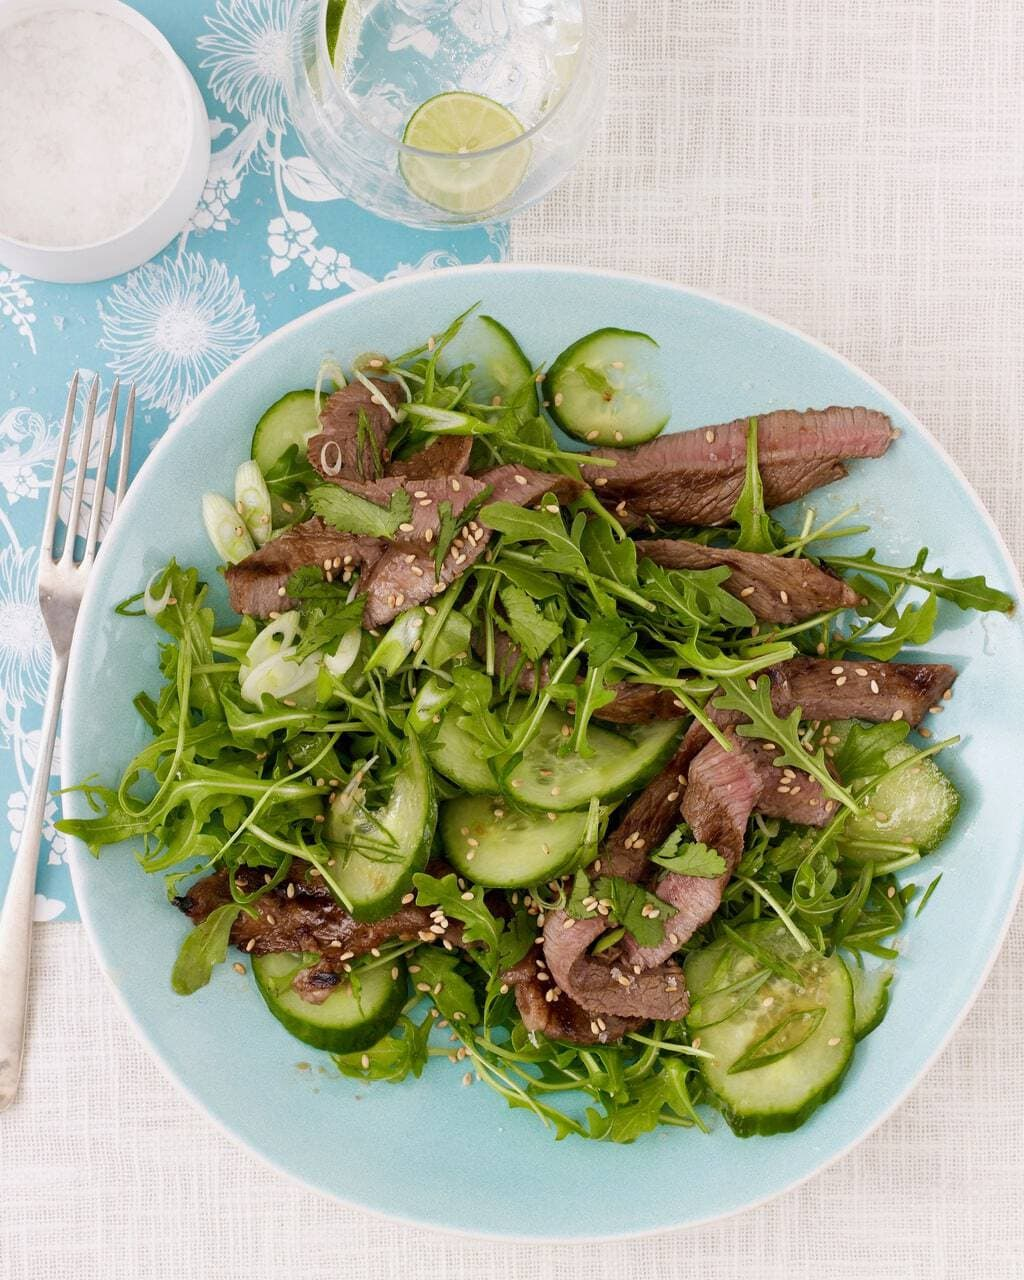 Sesame Ginger Beef Salad in turquoise bowl